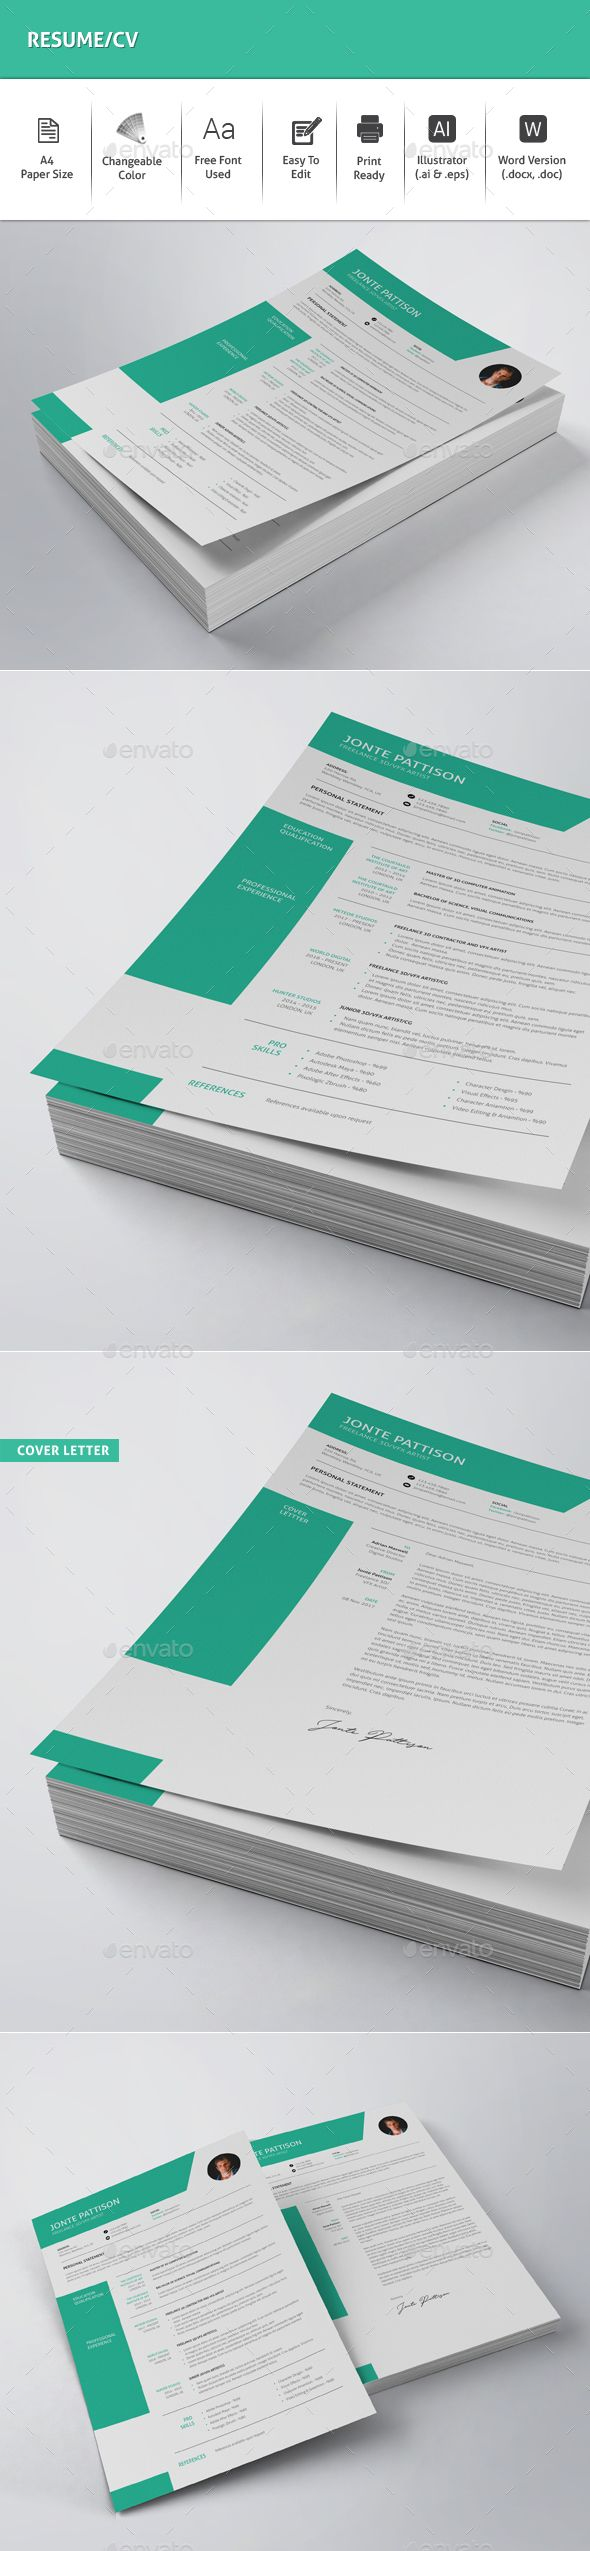 Cv Templates Design%0A Resume   CV Template Vector EPS  AI  DOCX  u     DOC